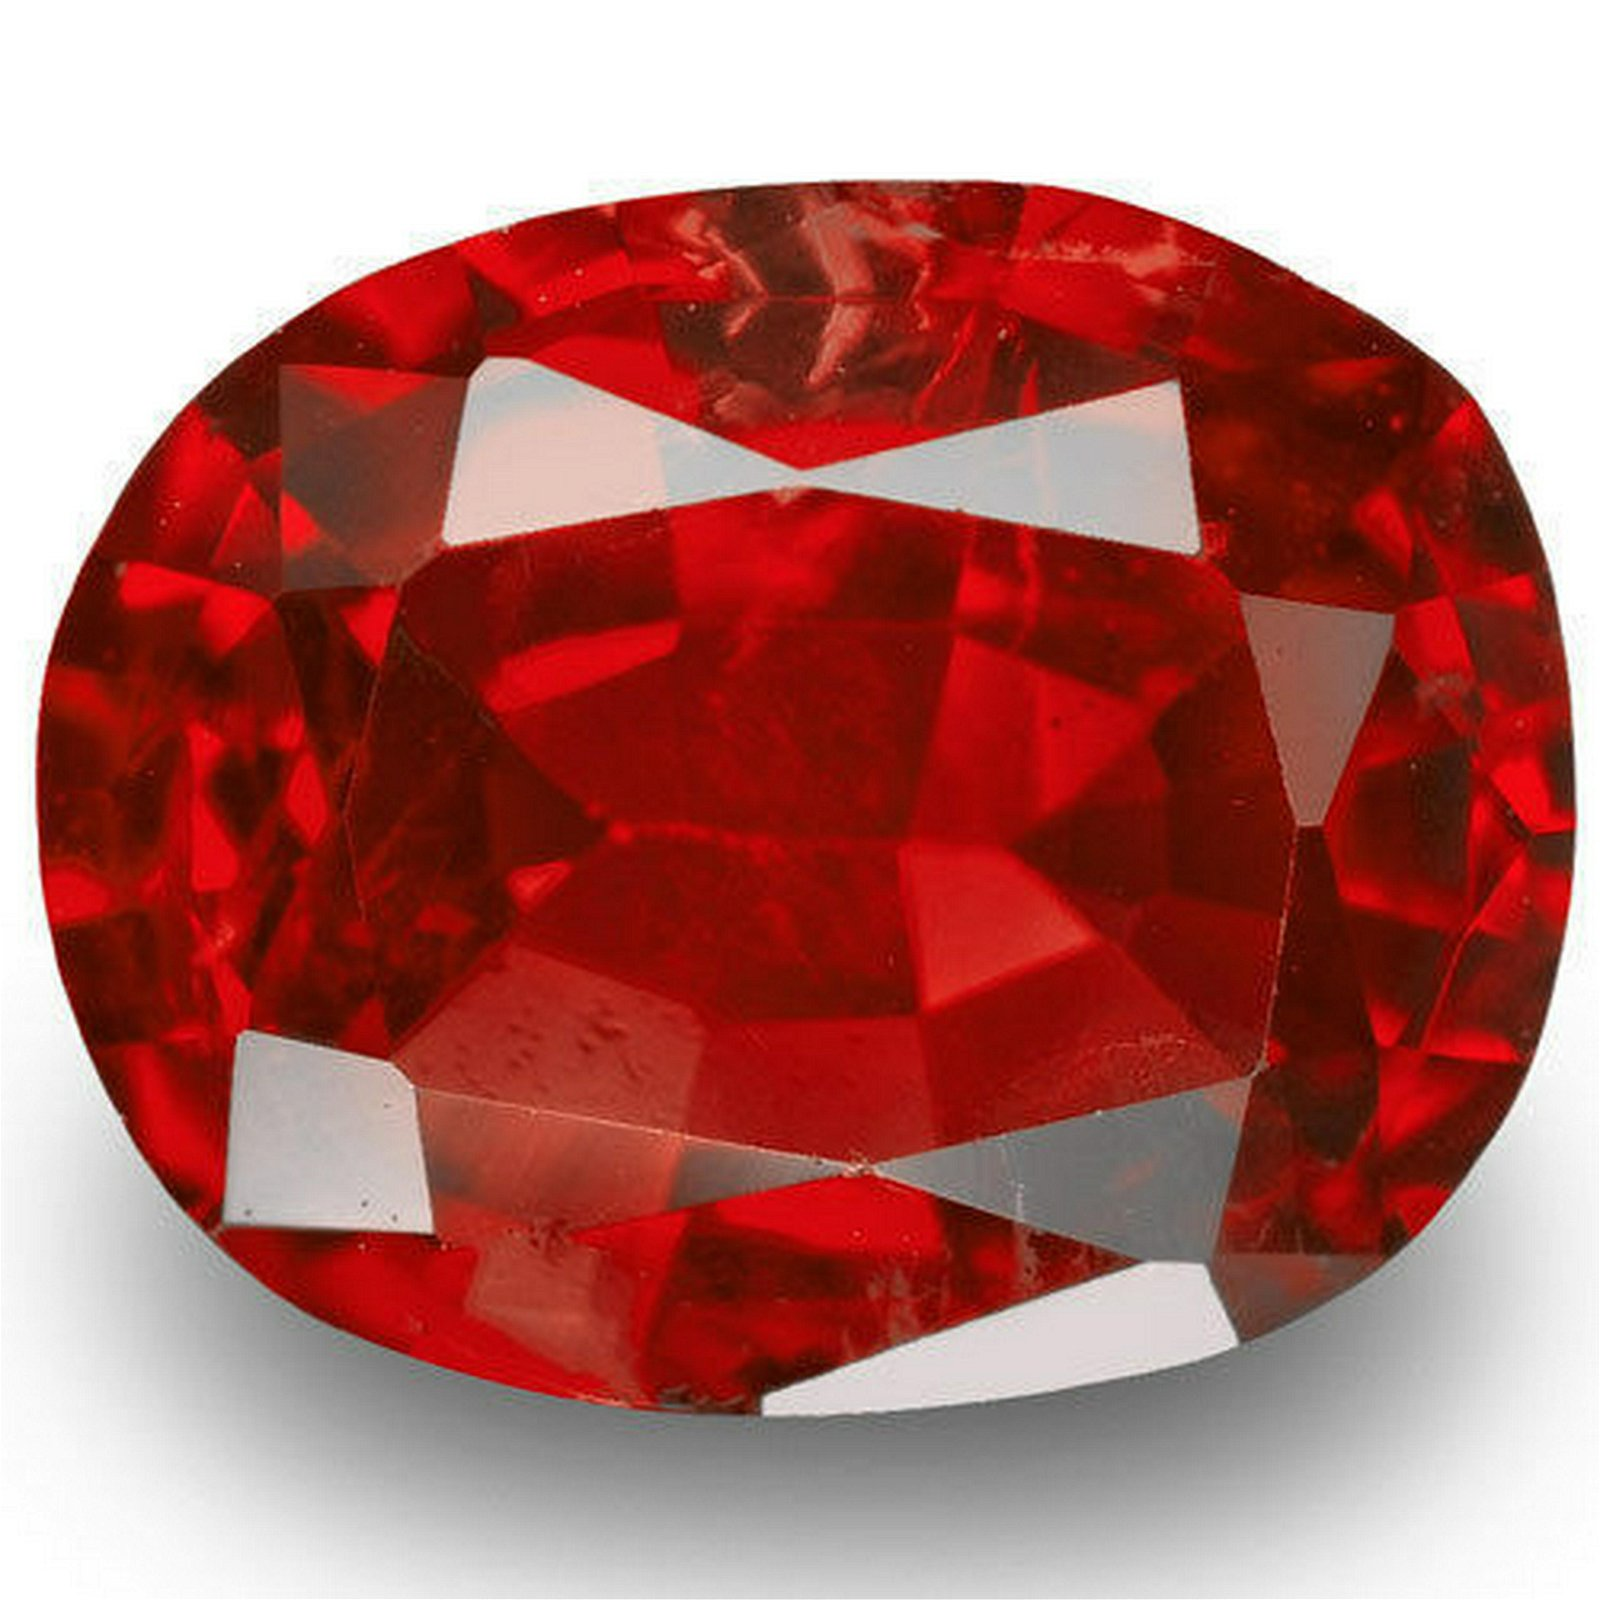 BURMA Spinel 1.04 Cts Natural Untreated Red Oval